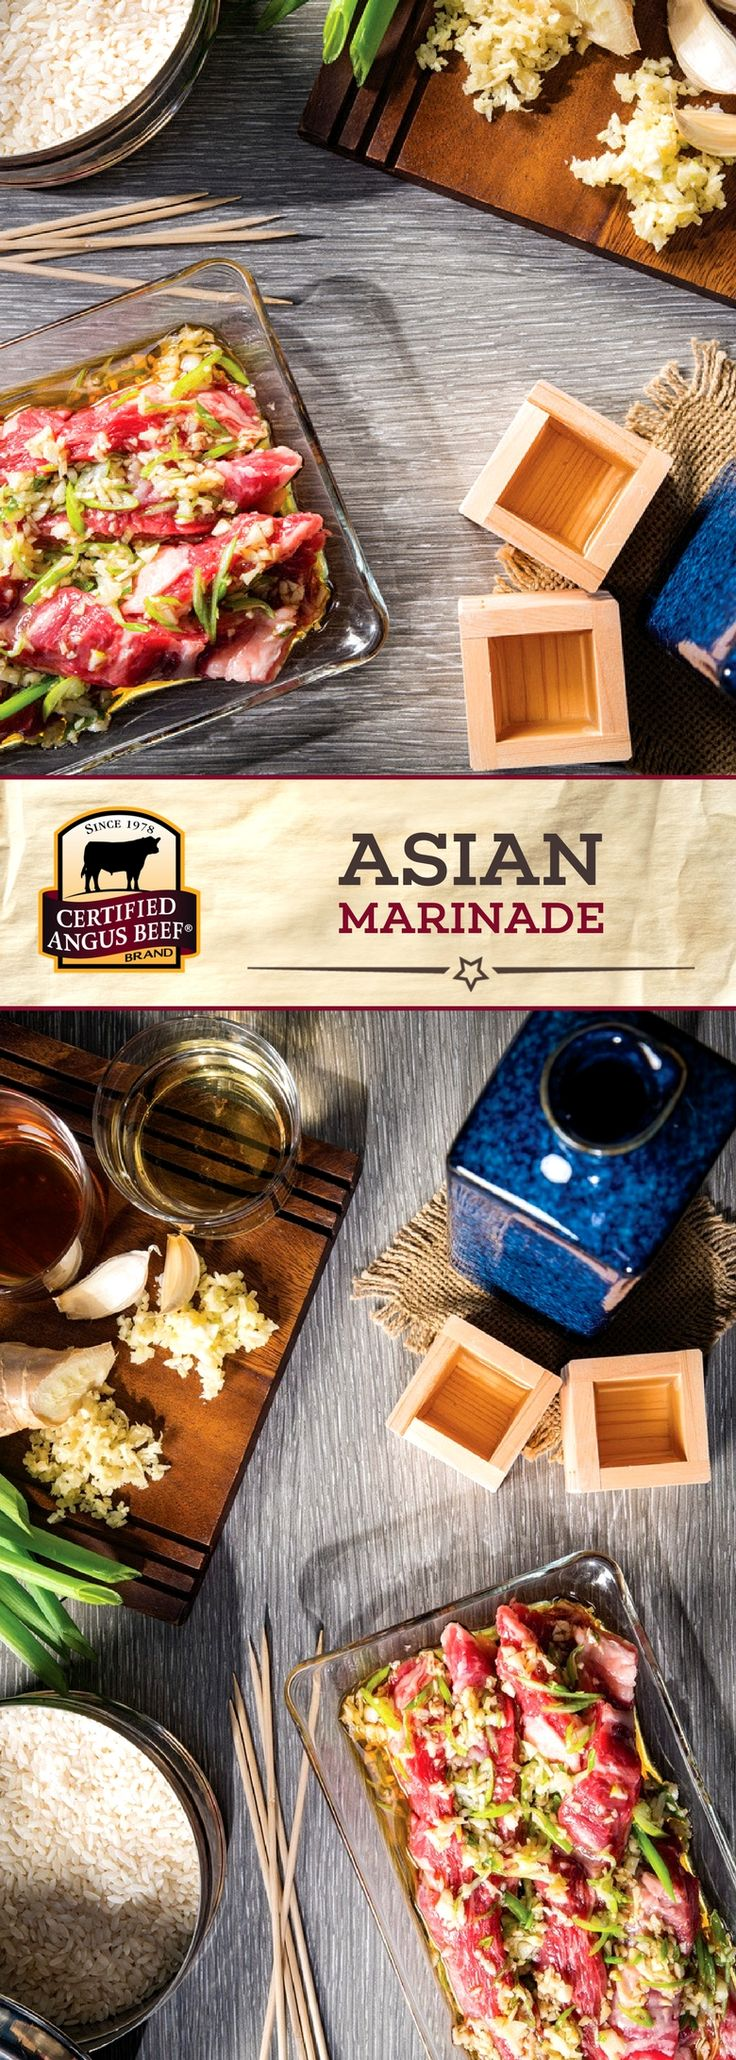 Certified Angus Beef®️️ brand Asian Marinade includes garlic, ginger, sake, and other bold ingredients for a DELICIOUS depth of flavor! Marinate your favorite cut overnight for a beef dinner you'll want to have again. #bestangusbeef #certifiedangusbeef #marinade #seasoning